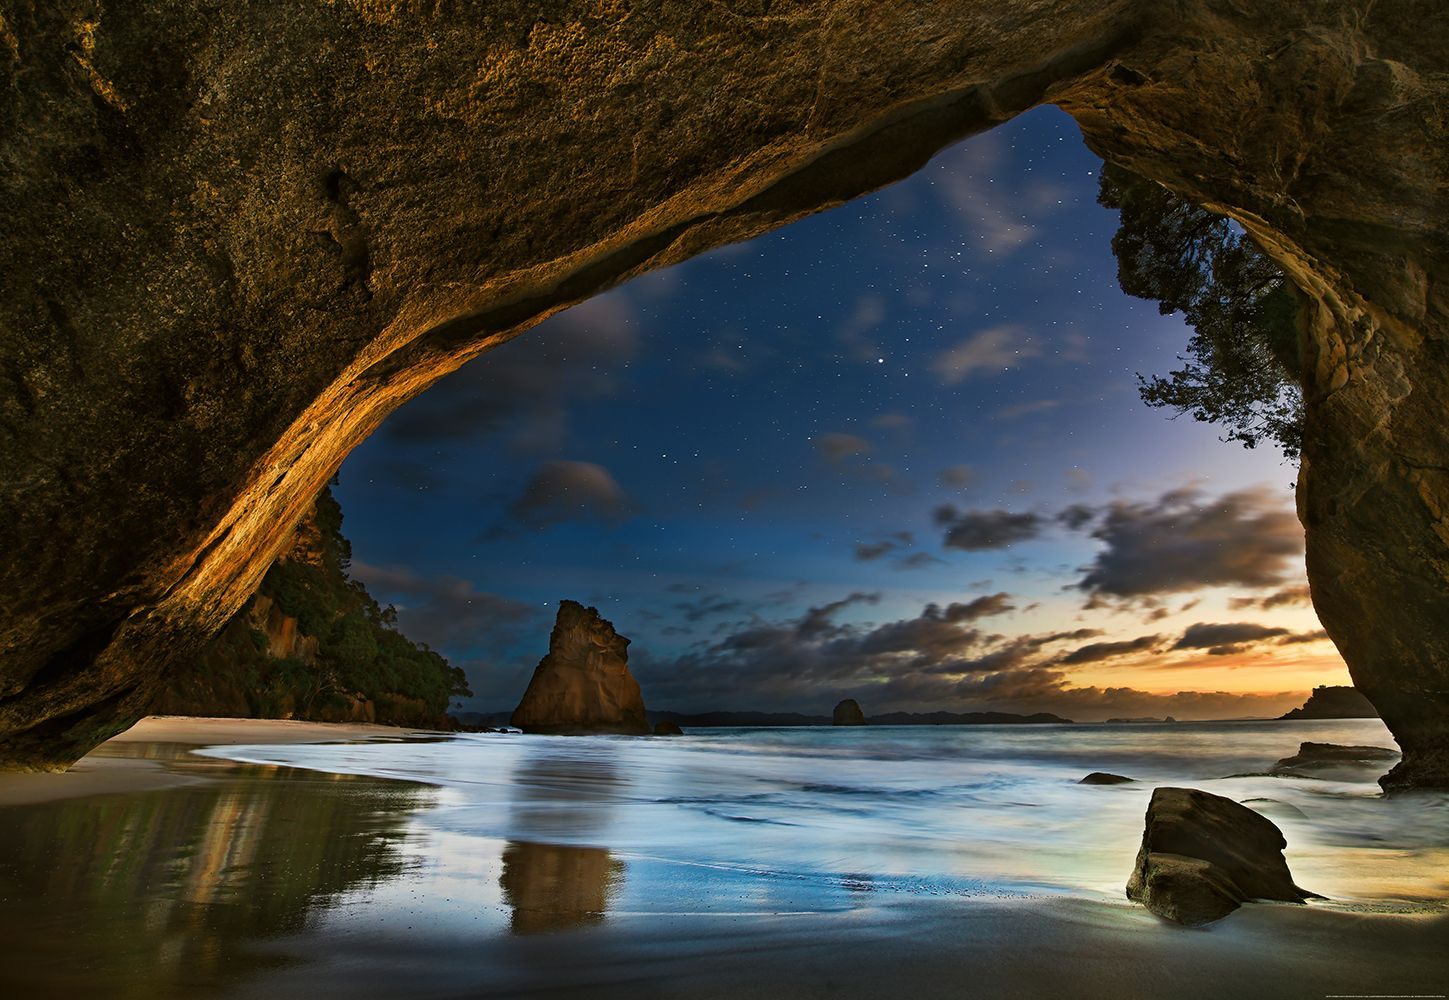 Valokuvatapetti Idealdecor Digital Cathedral Cove In New Zealand 4-osaa 5051-4V-1 254x368 cm